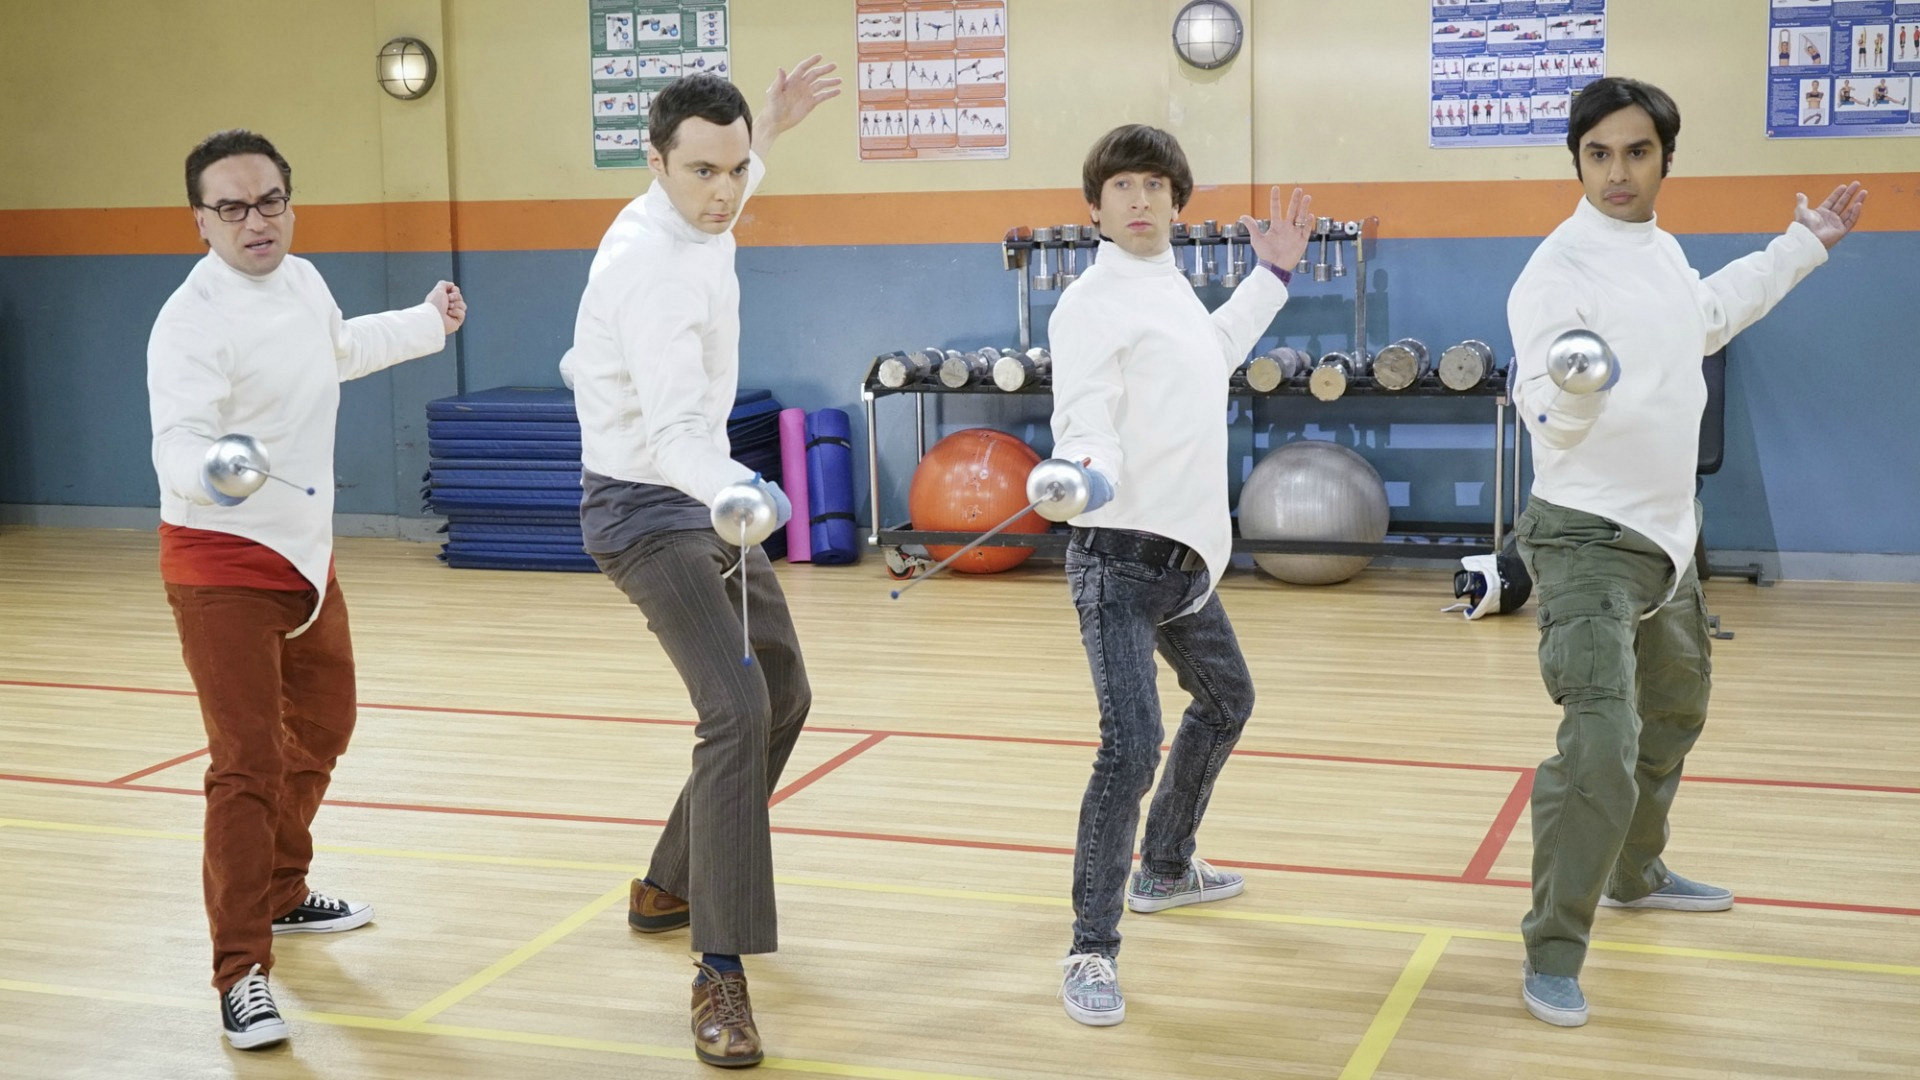 4. We laughed when the guys tried to prove their athleticism by taking fencing lessons